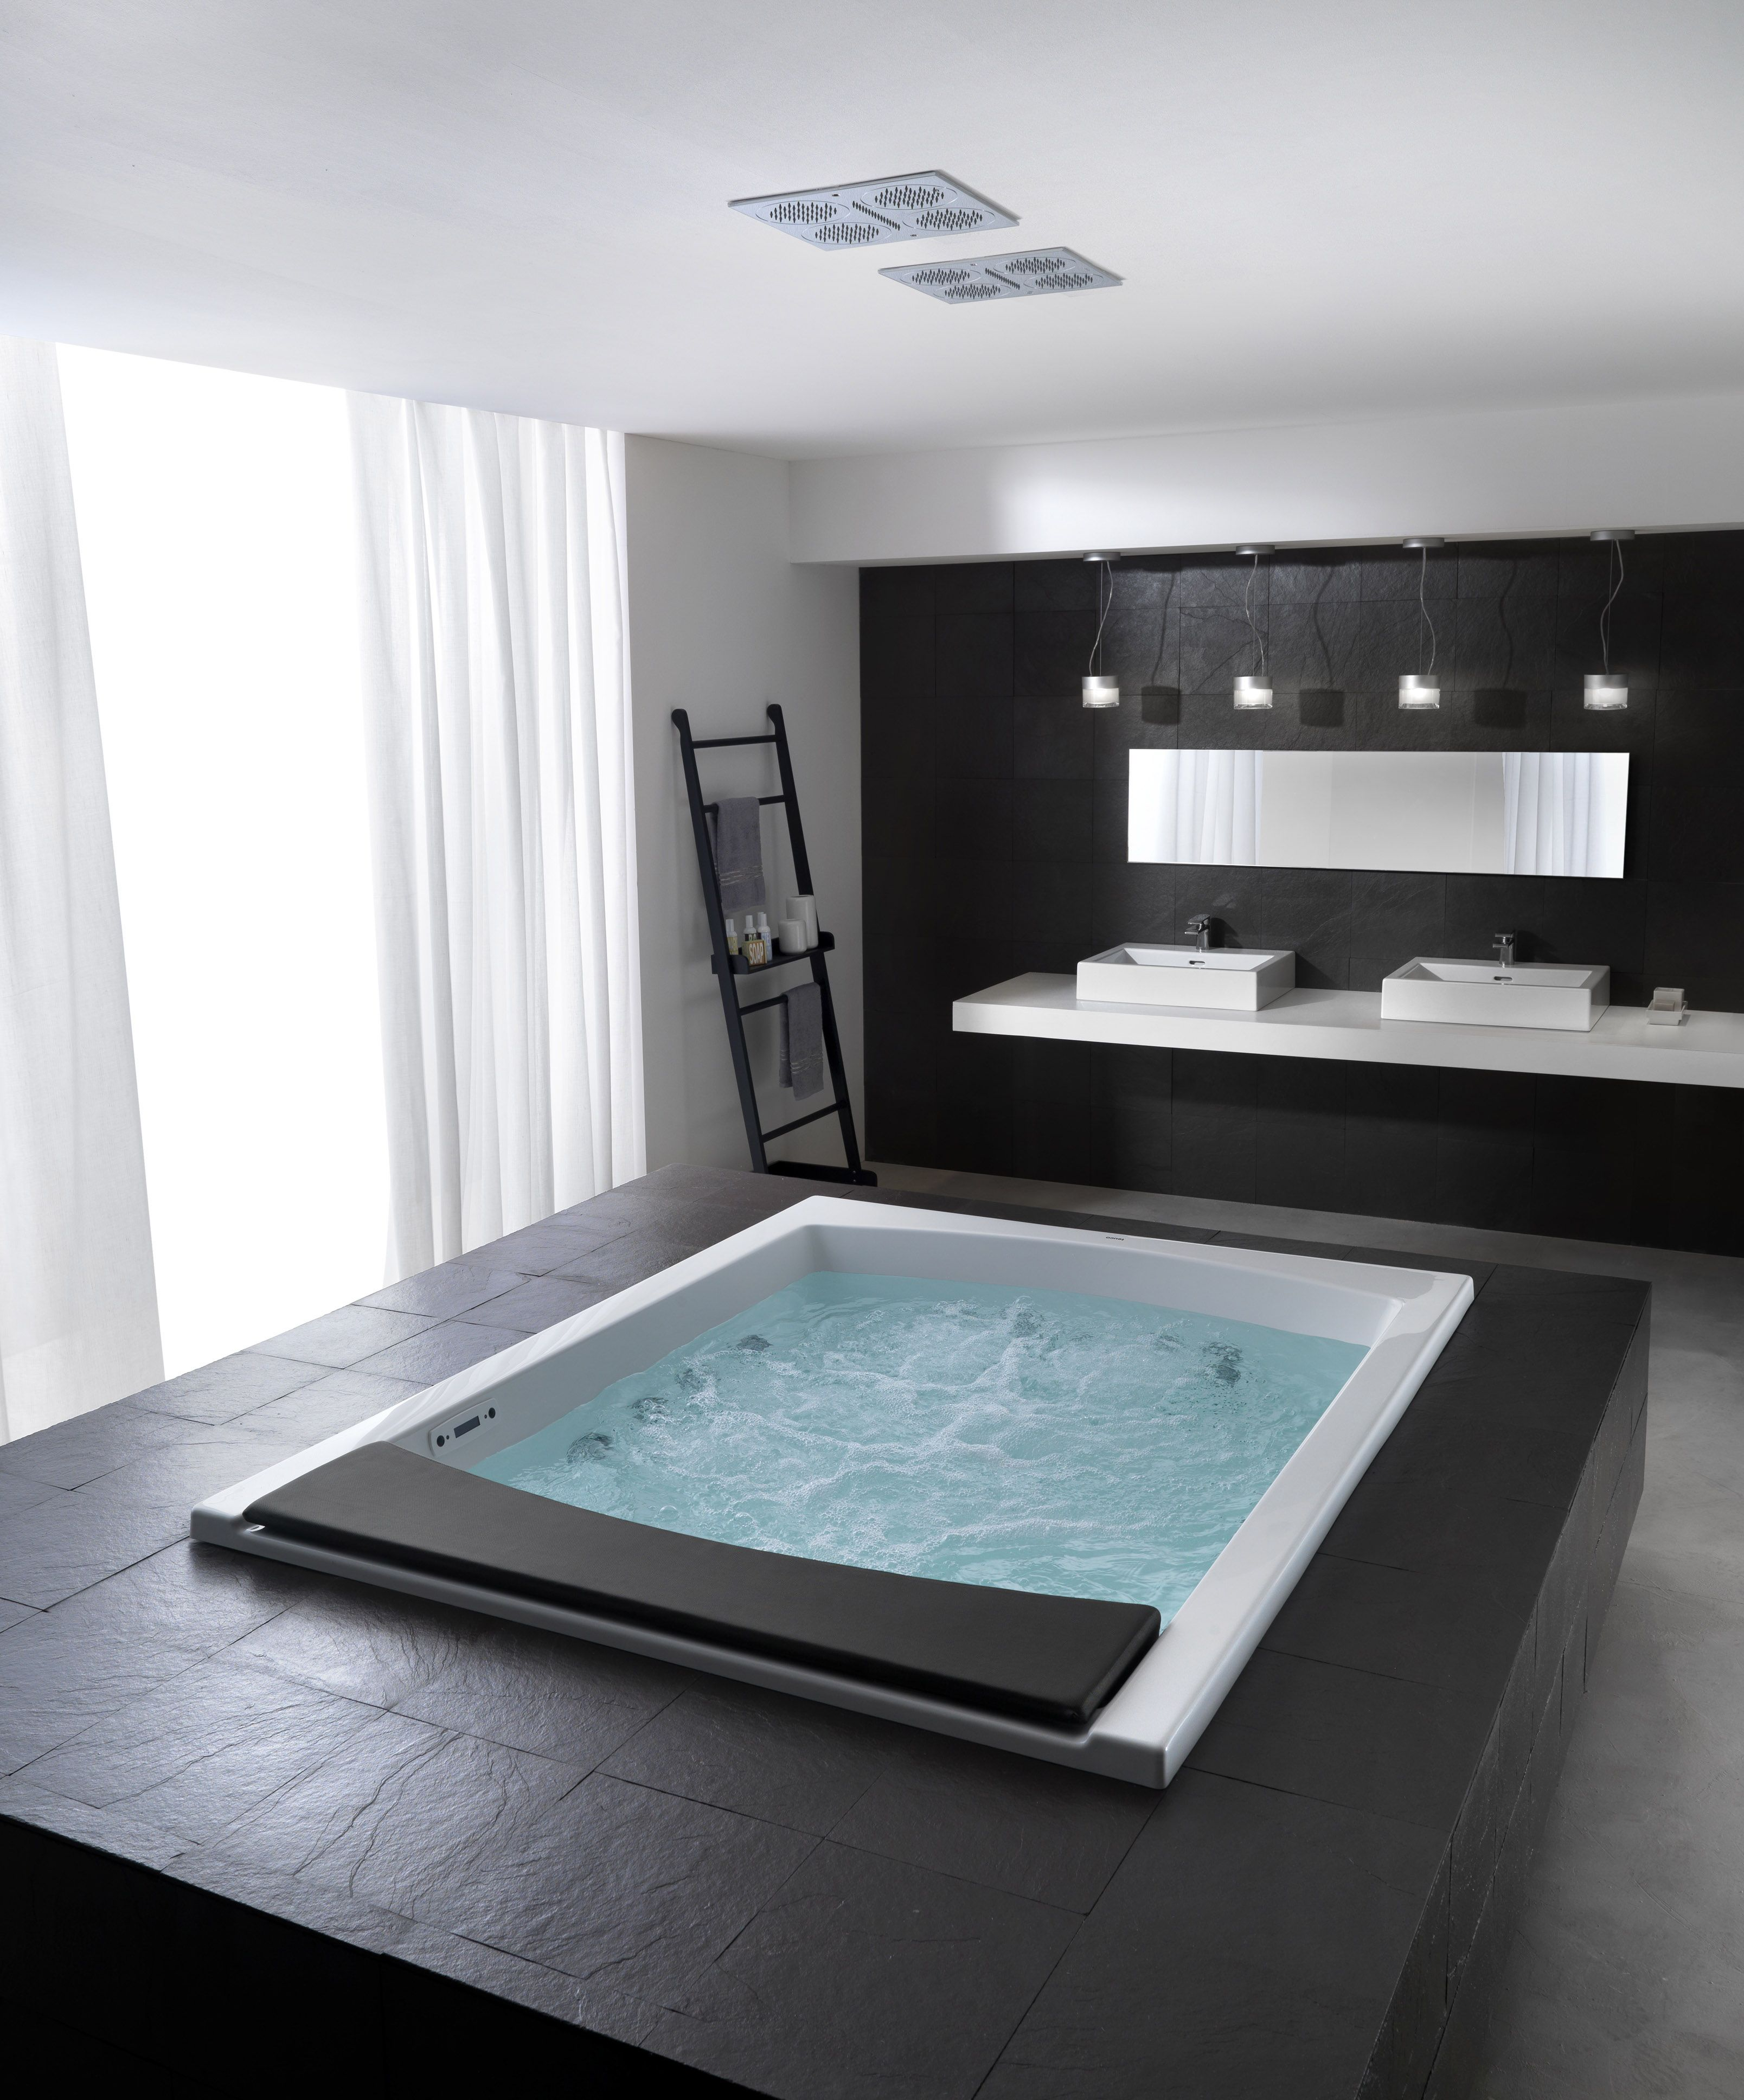 Traumbad Pinterest Einmal Traumbad Bitte Homey Home Home In 2019 Badezimmer